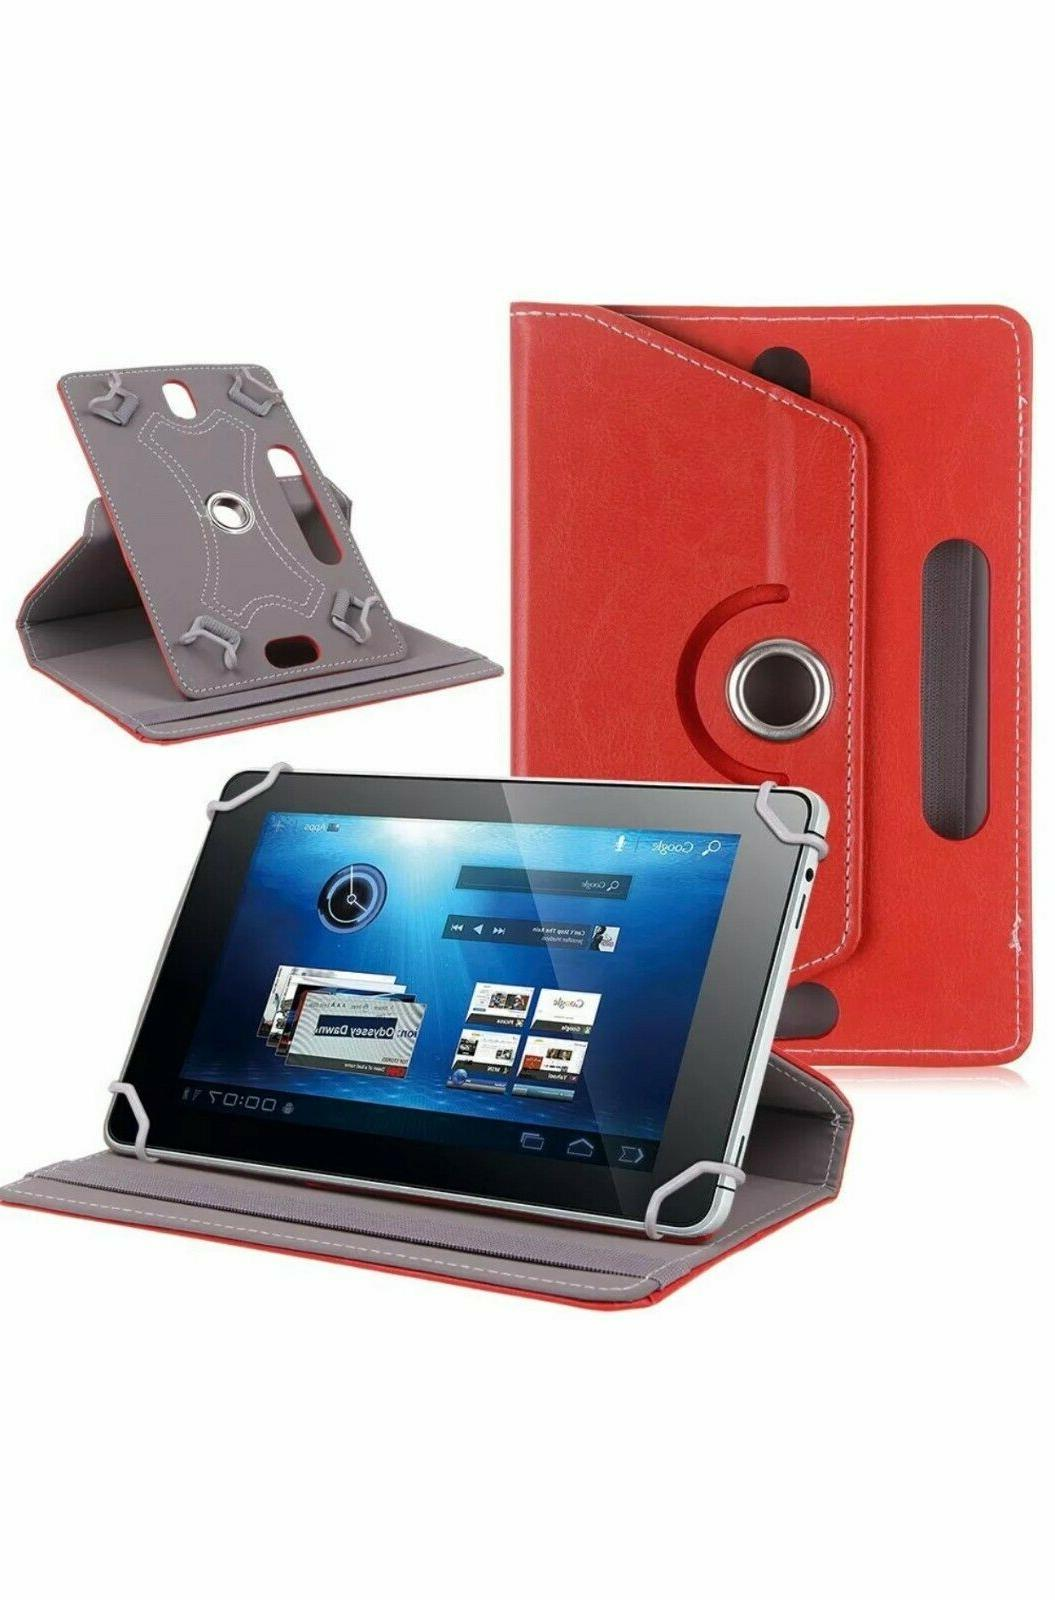 Protective Stand for Tablet ipad LG